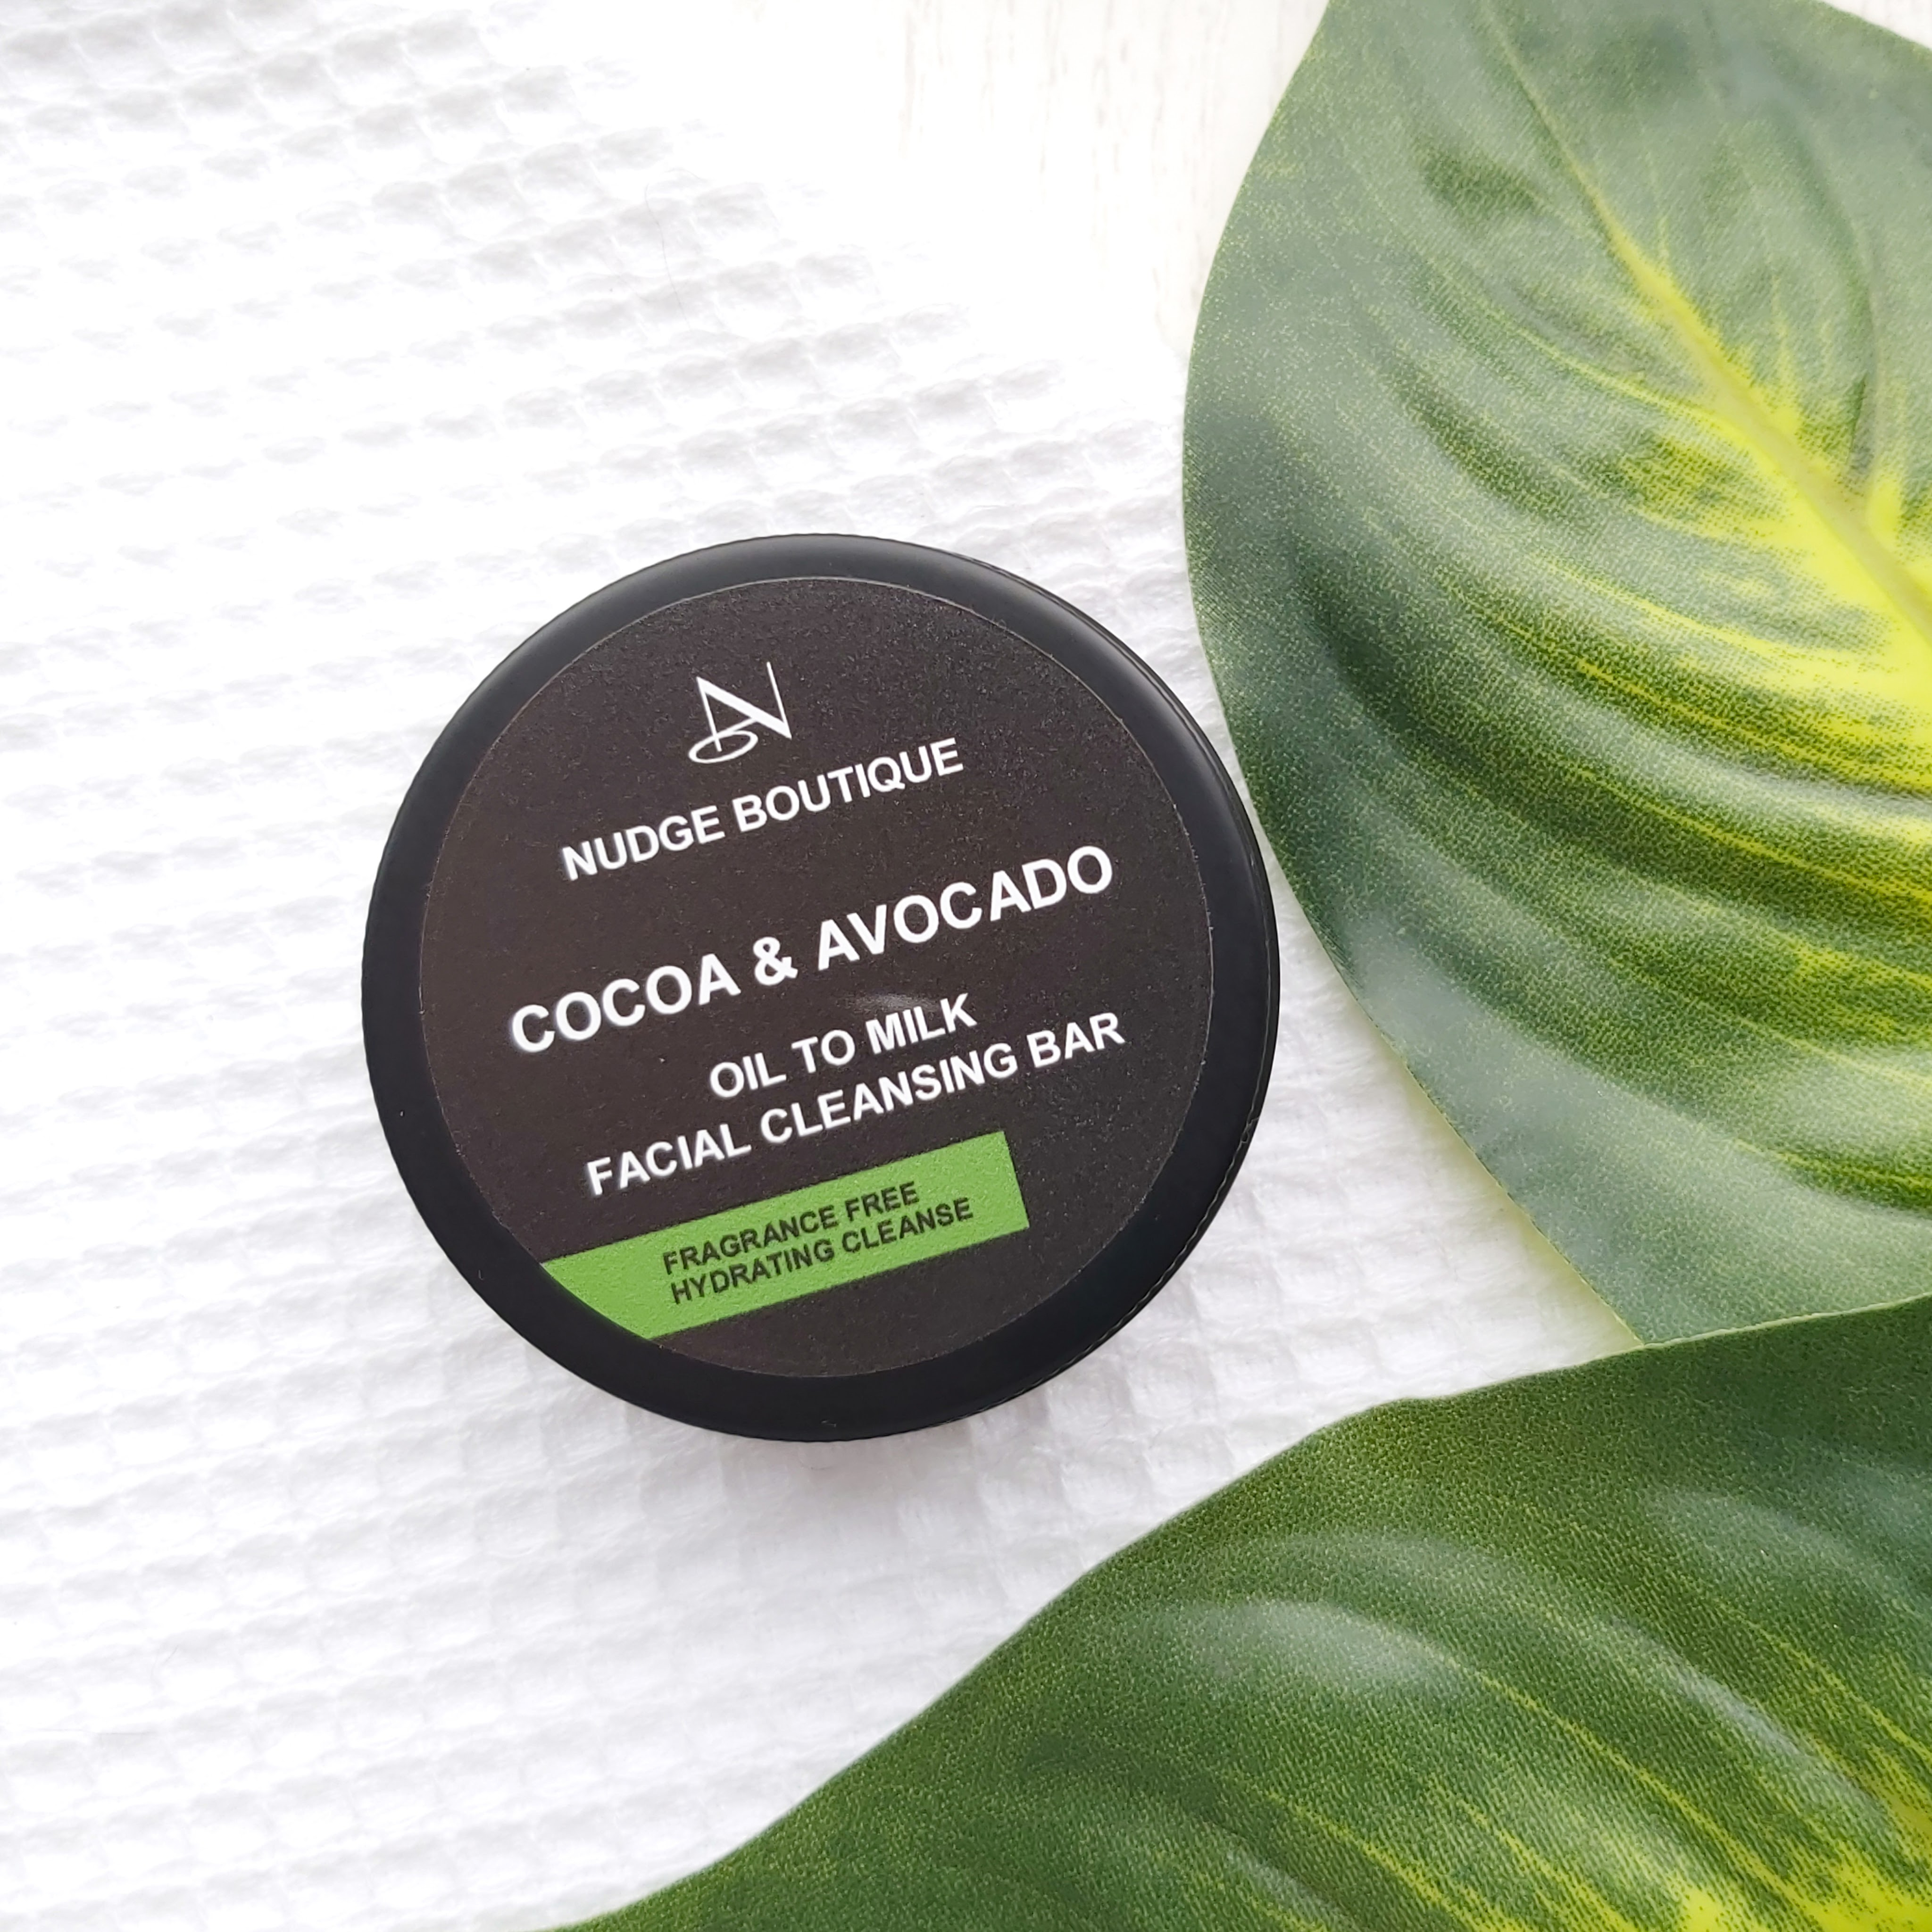 Nudge Boutique Cocoa & Avocado Oil to Milk Cleansing Bar in a black aluminium tin on a waffle flannel and green leaves to the side - Review by Beauty Folio